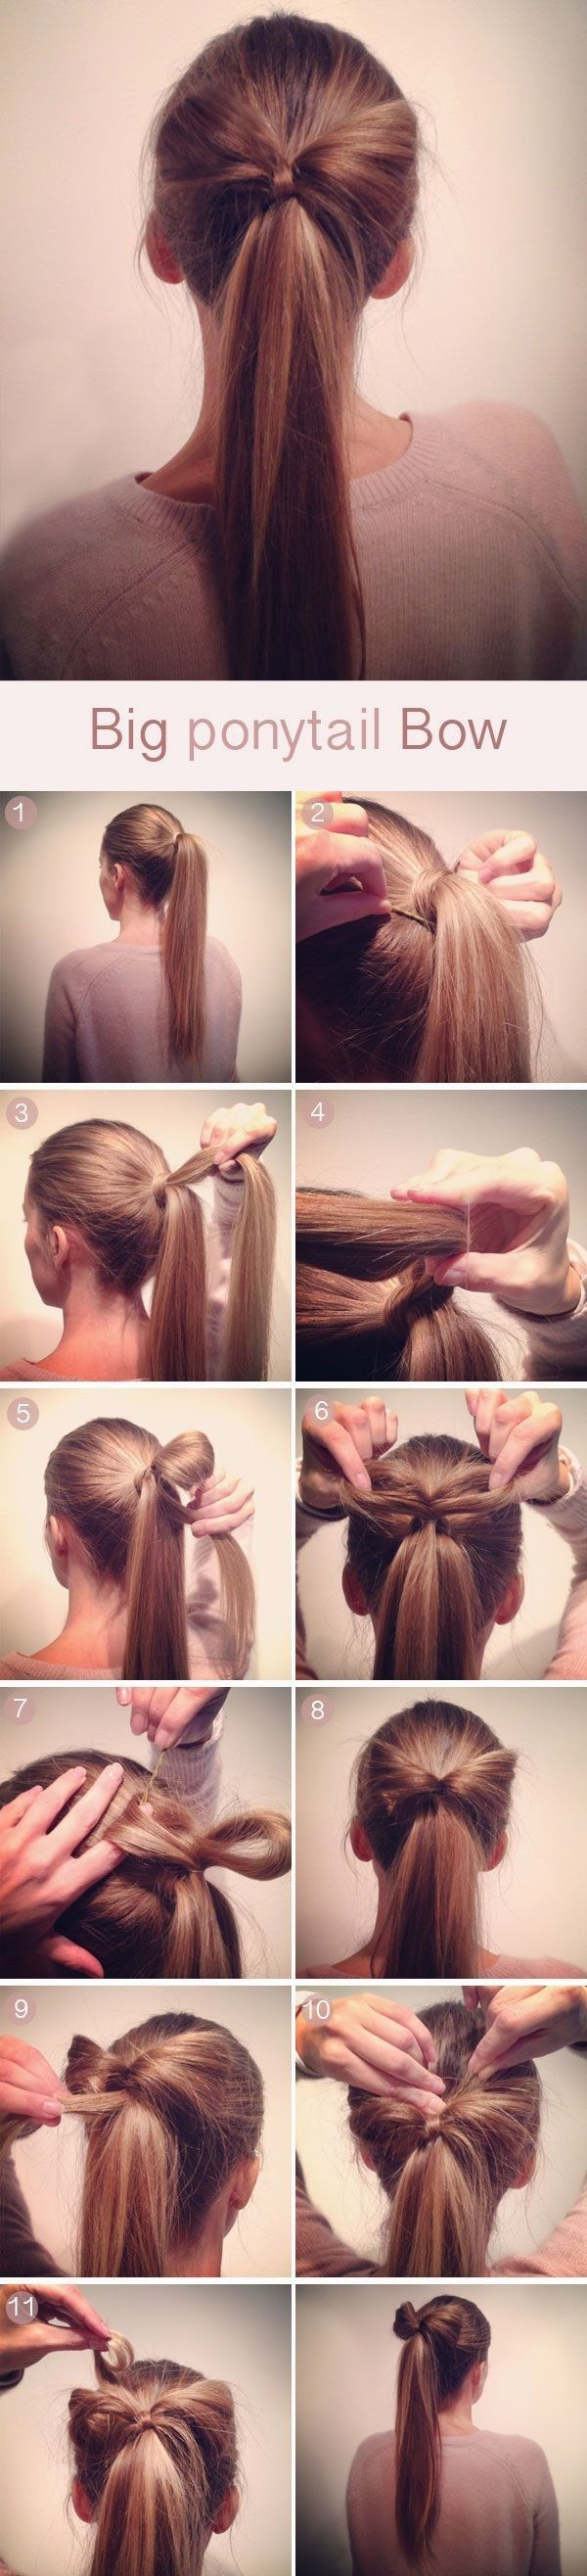 Put a big floppy bow on it. | 27 Tips And Tricks To Get The Perfect Ponytail